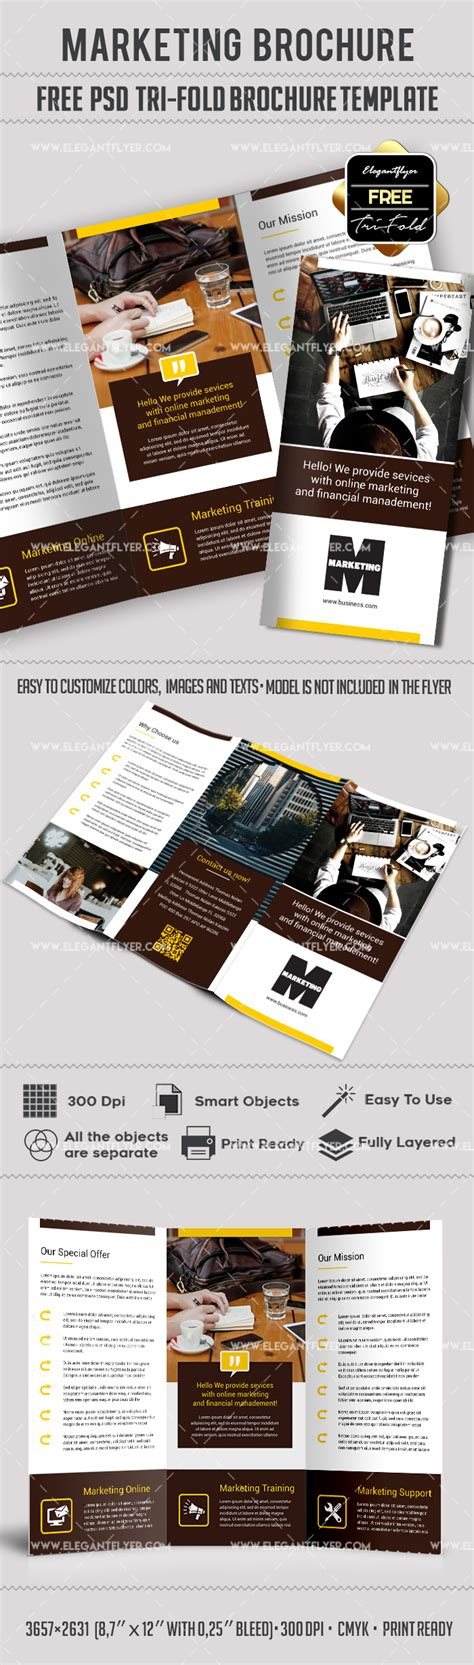 3d Brochure Templates Psd by Marketing Free Tri Fold Psd Brochure Template By